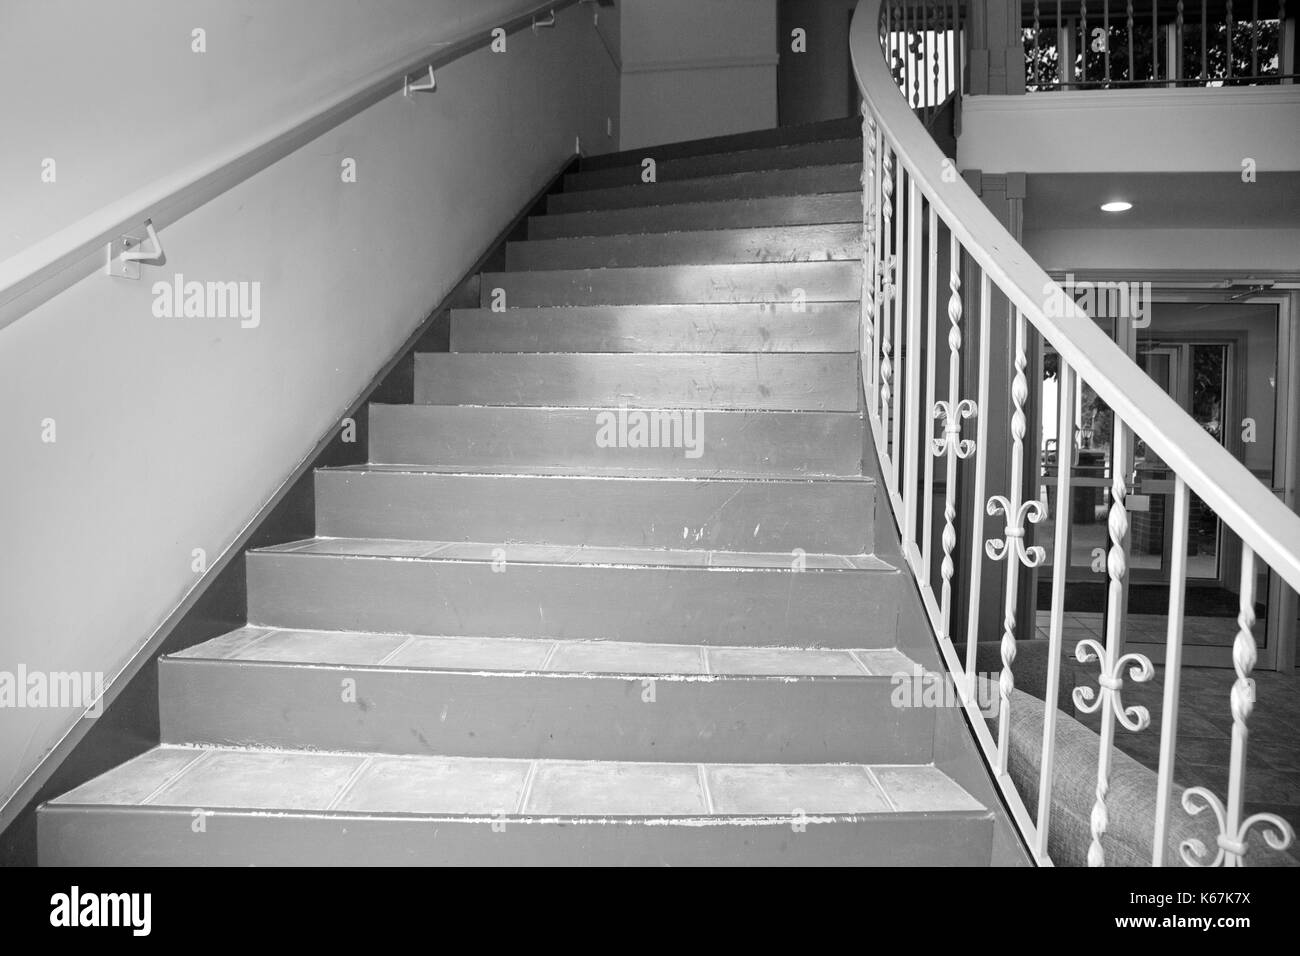 black and white view of old apartment building staircase - Stock Image